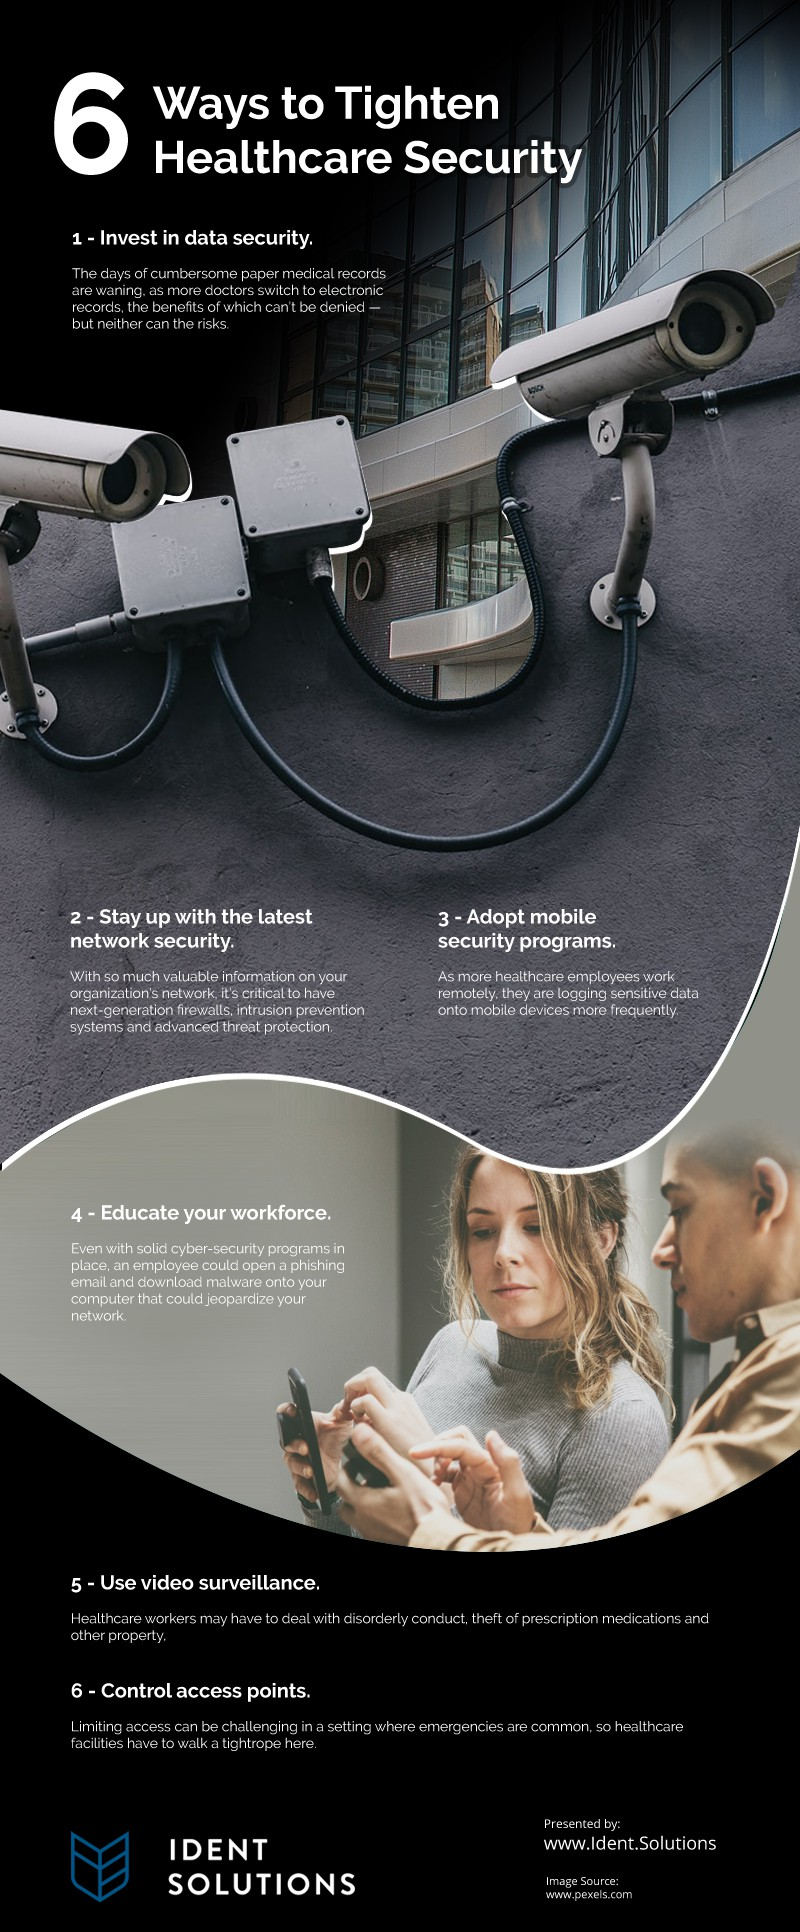 6 Ways to Tighten Healthcare Security Infographic